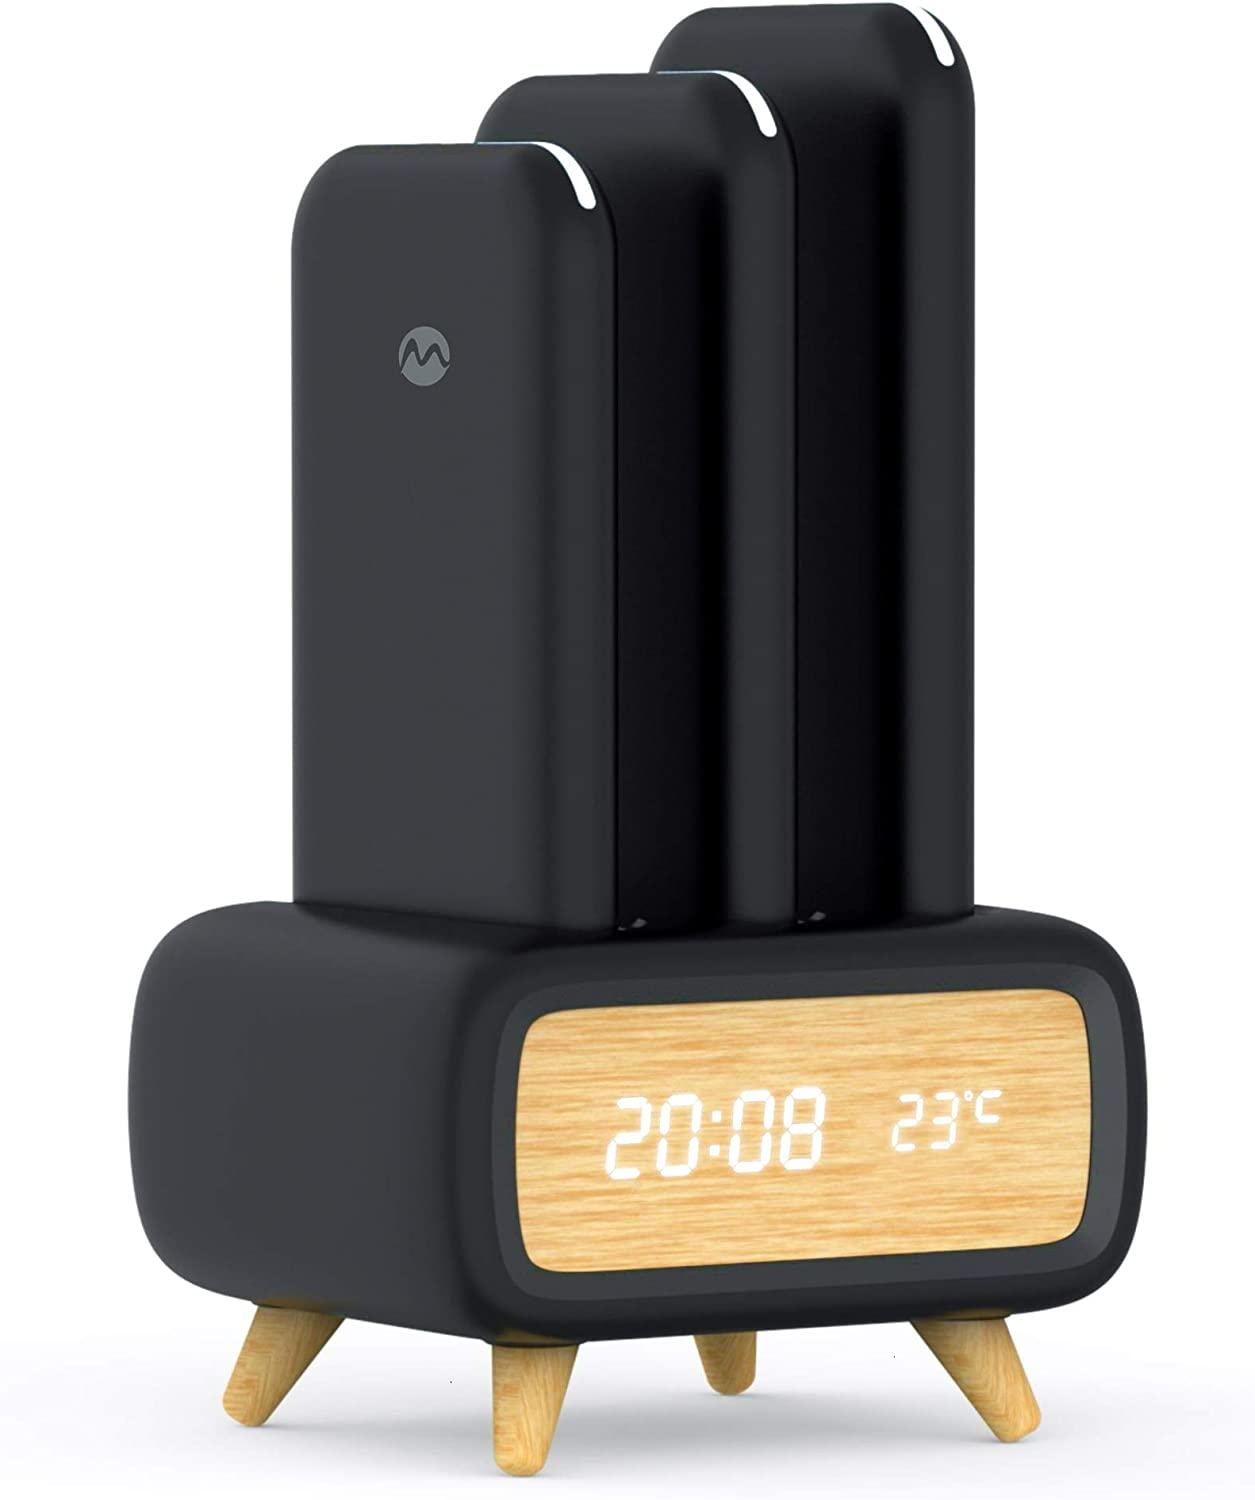 Mangata Orion [24,000 mAh Wireless Powerbank Charging Station] 3X 8000mAh Power Bank Set with Dock for Home & Office | Clock, Temperature Display (Black)